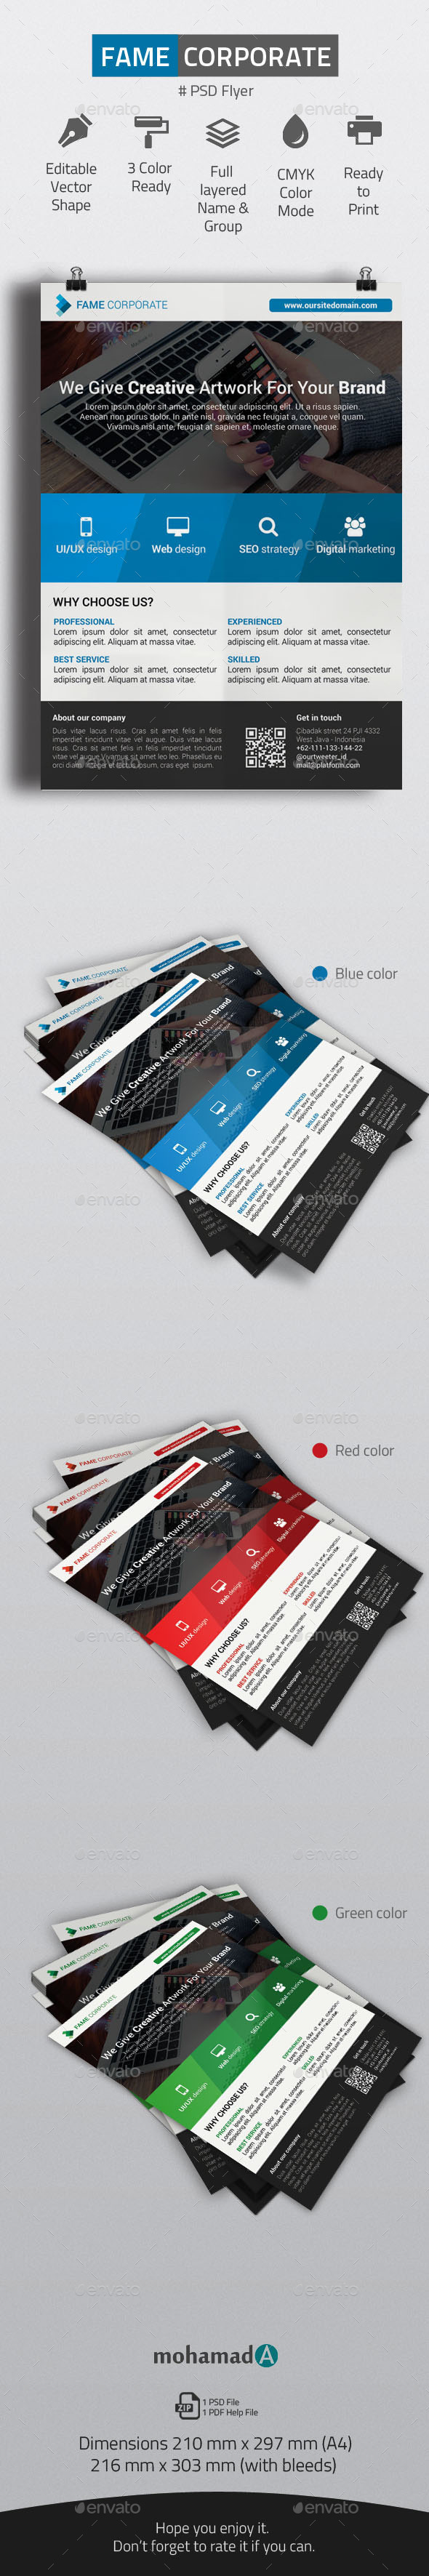 GraphicRiver Fame Corporate Flyer 11263505